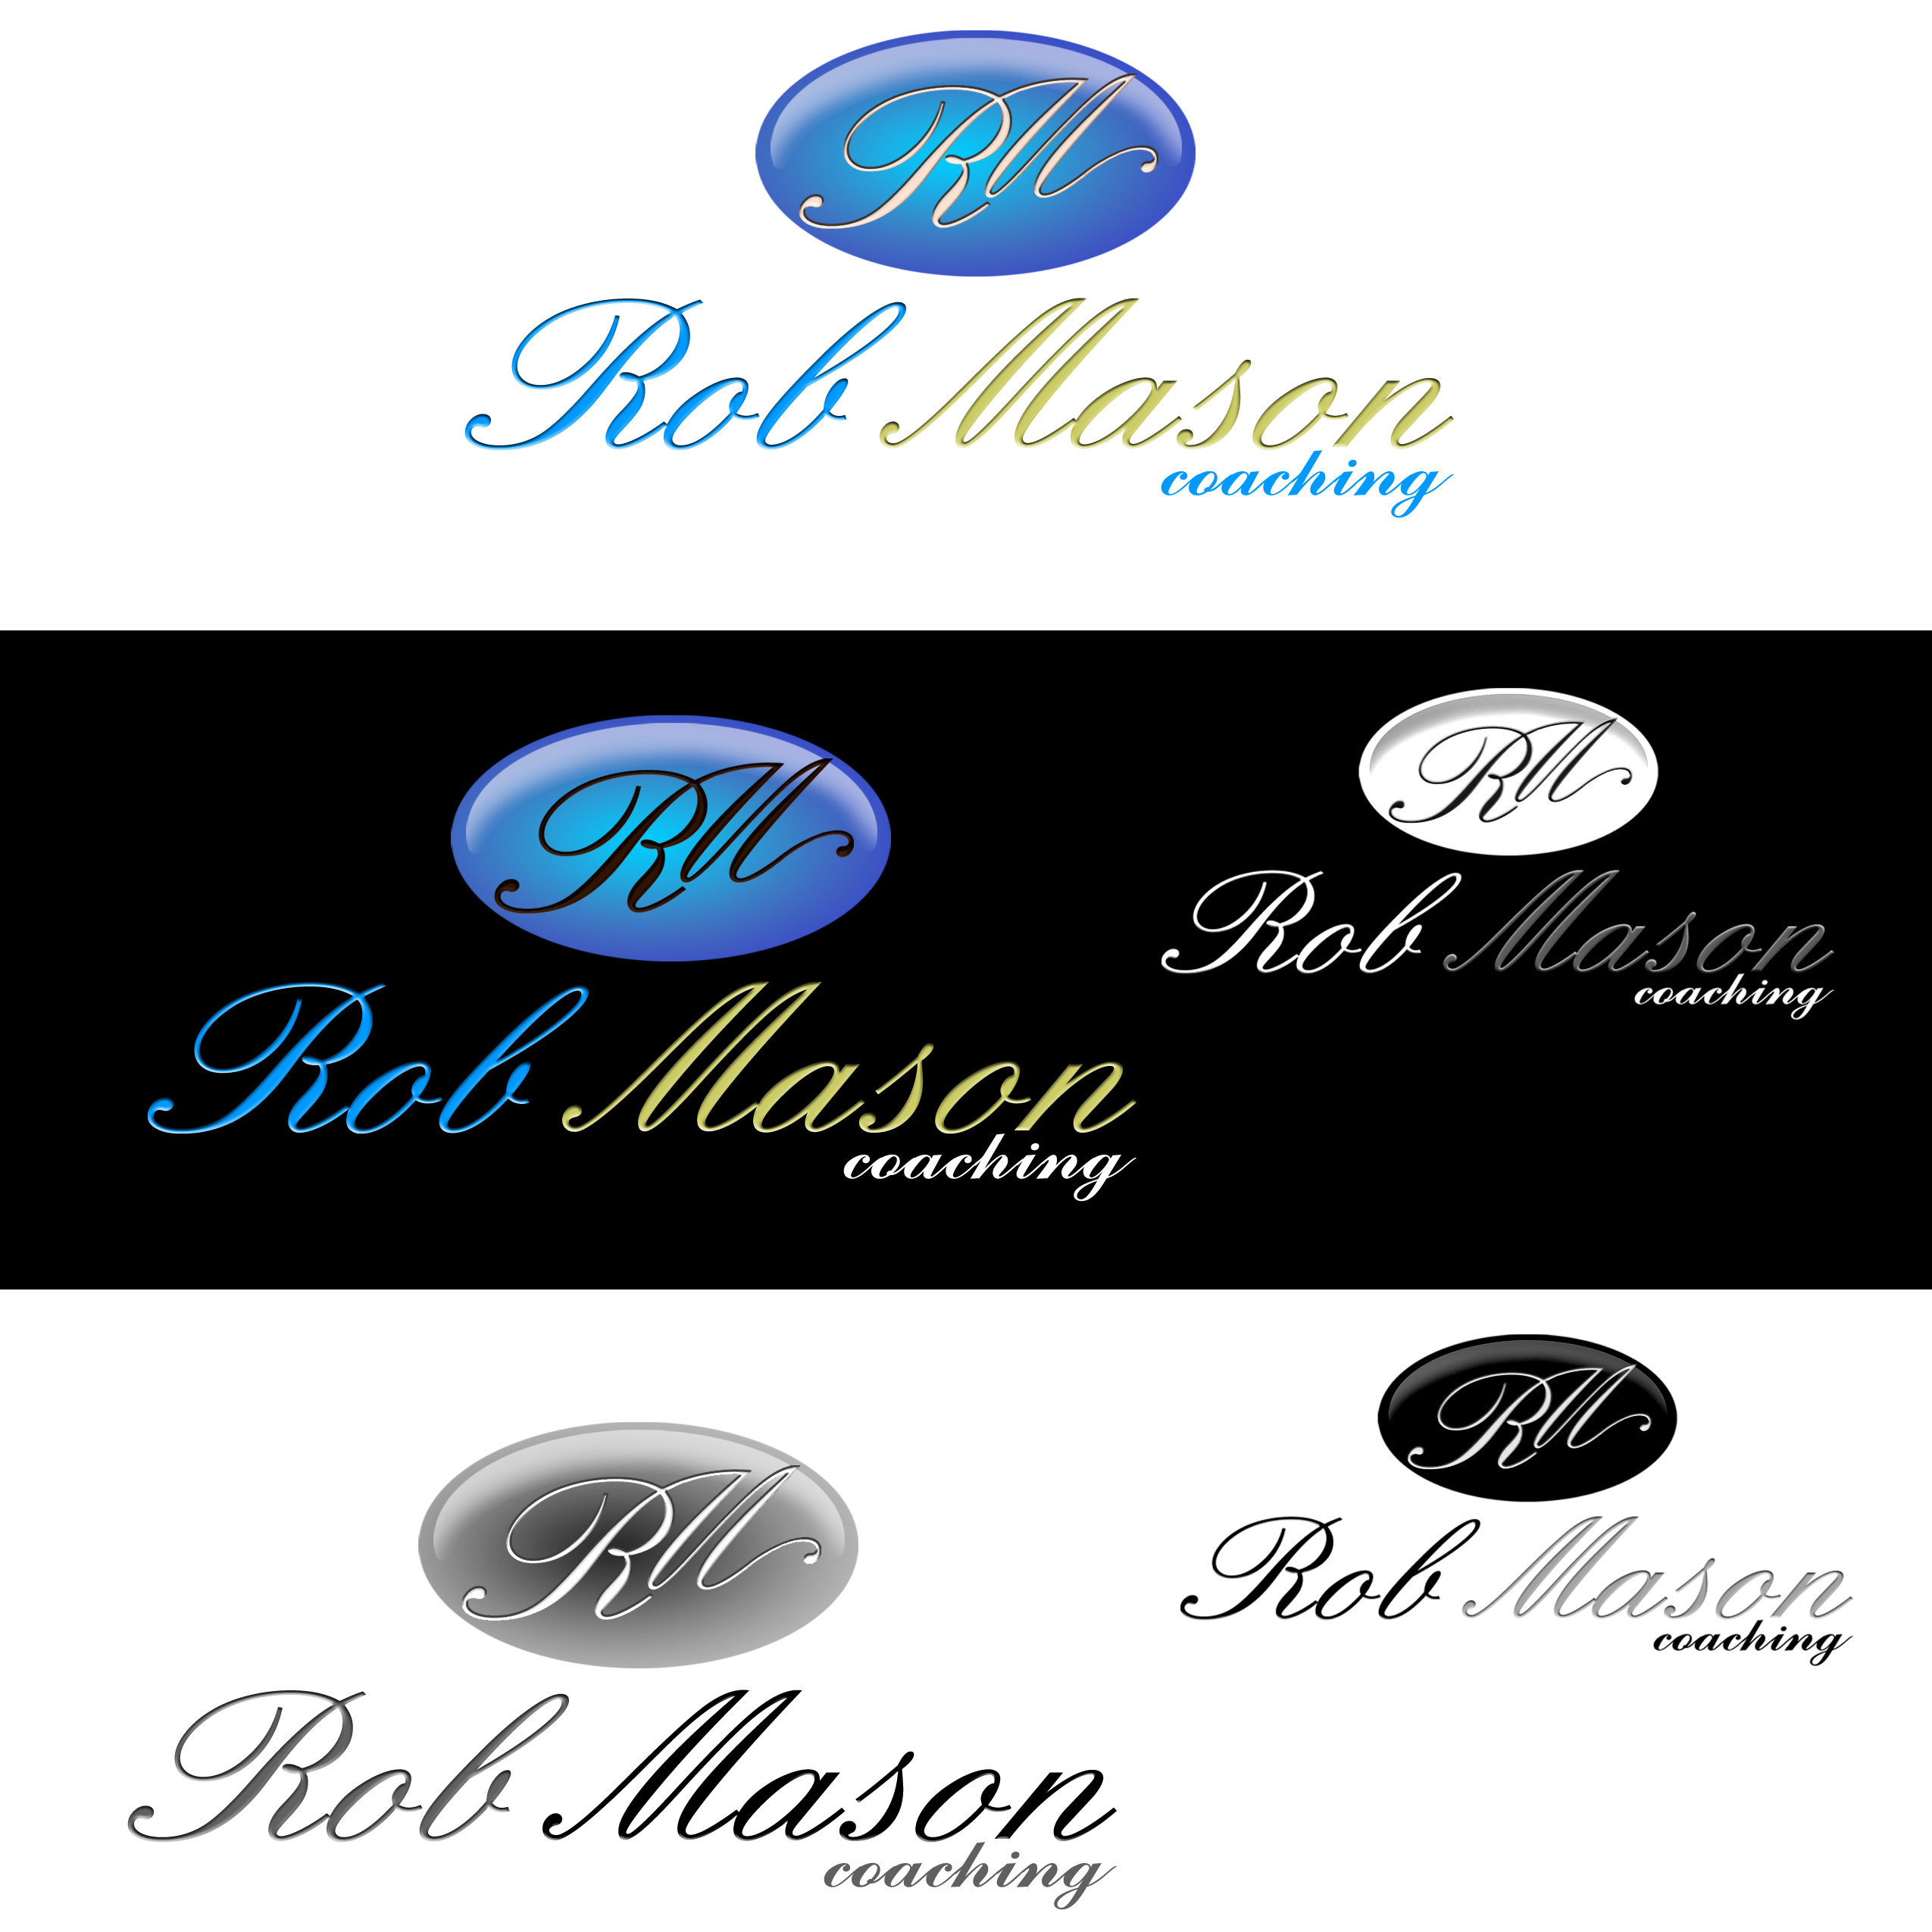 Logo Design by omARTist - Entry No. 100 in the Logo Design Contest New Logo Design Needed for Exciting Company Rob Mason Coaching.